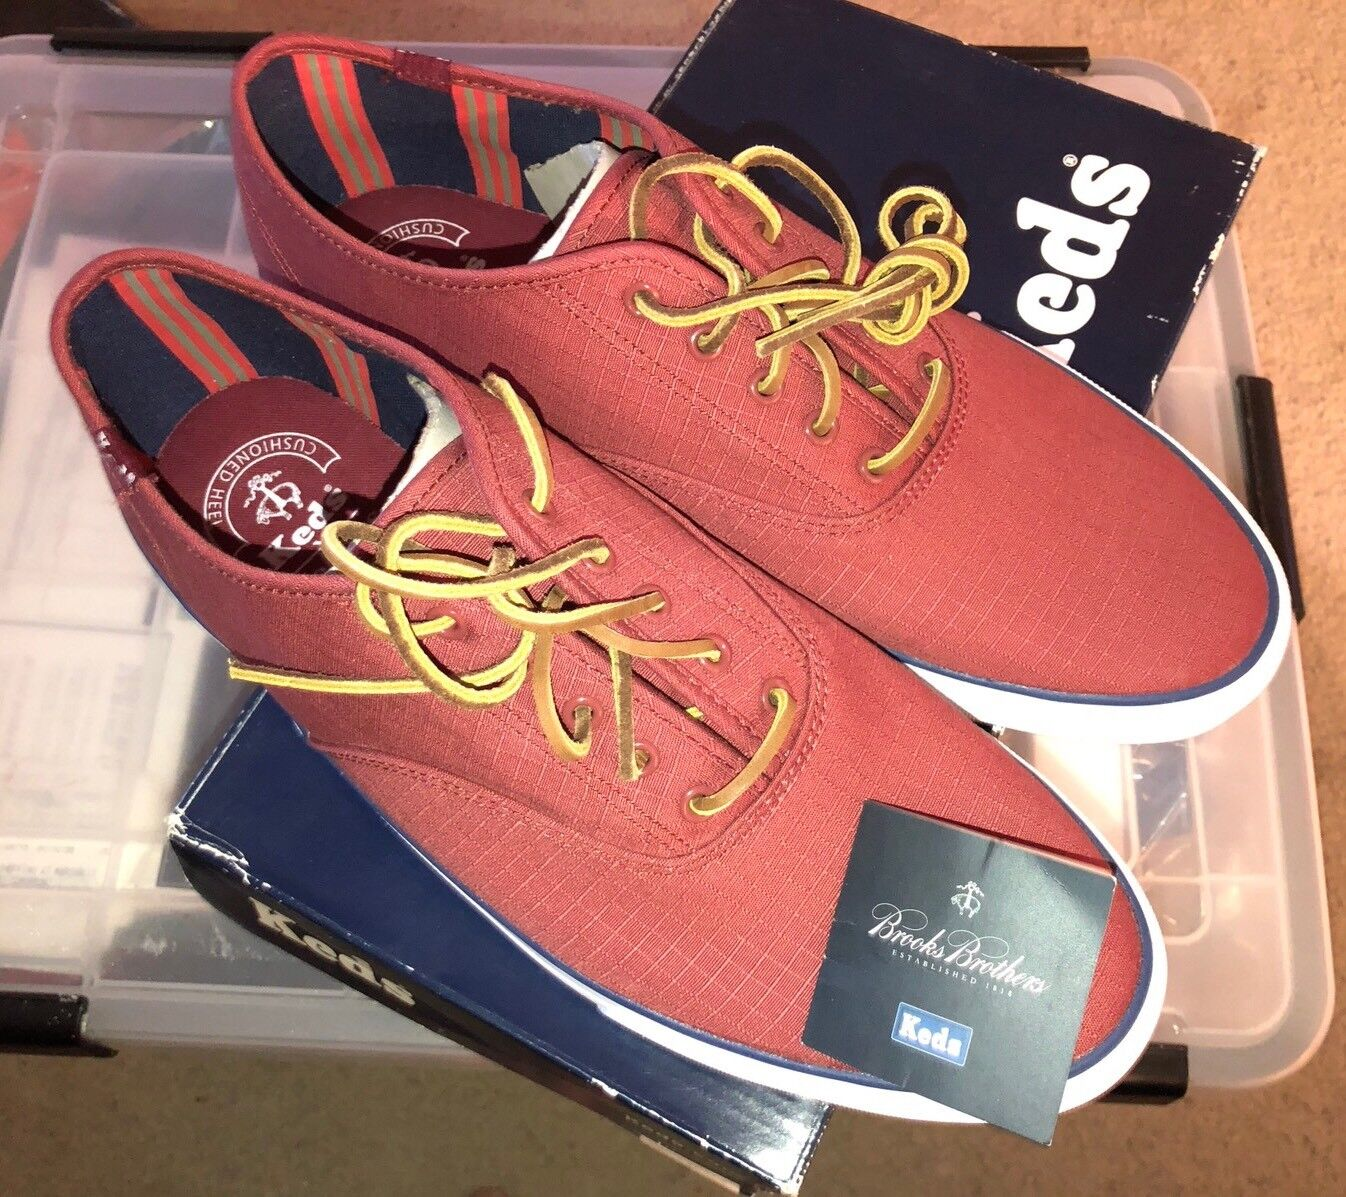 Vintage Keds X Brooks Bredhers Collaboration Maroon shoes Sneakers Size 11.5